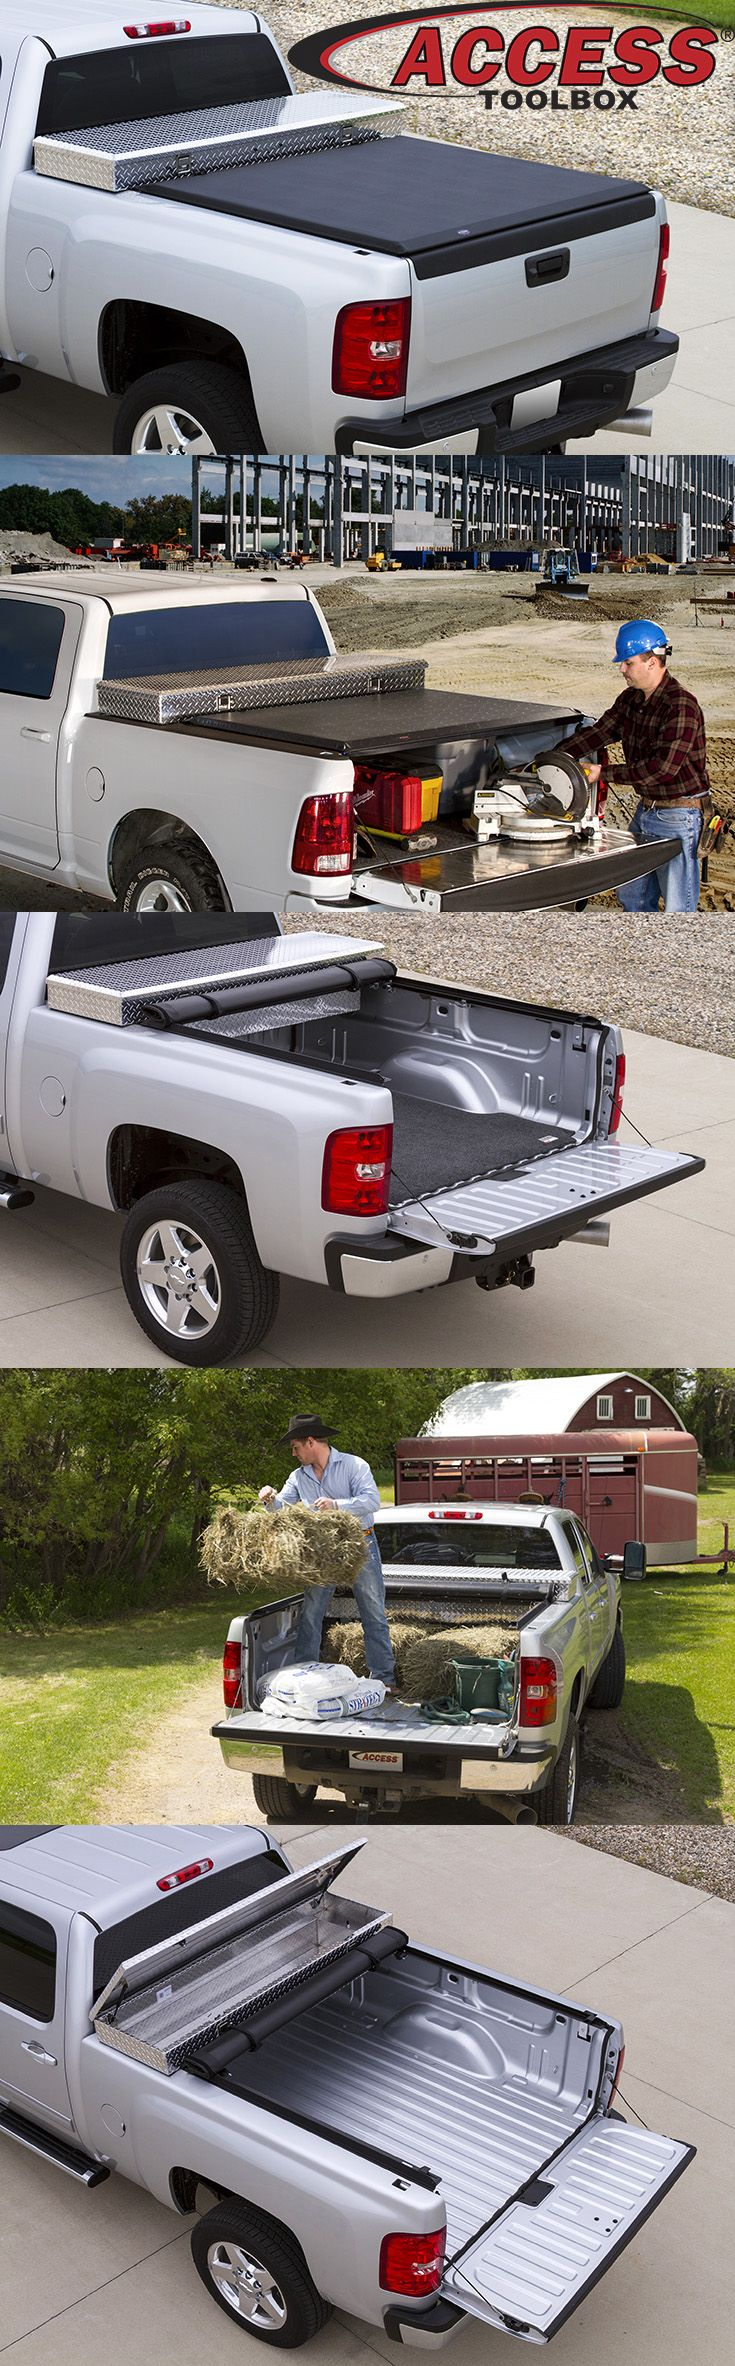 "Don't choose between a toolbox or tonneau cover when you can have both. The ACCESS® Toolbox Edition Roll-Up Cover is specially designed to fit behind most 19"" - 21"" over-the-rail toolboxes."